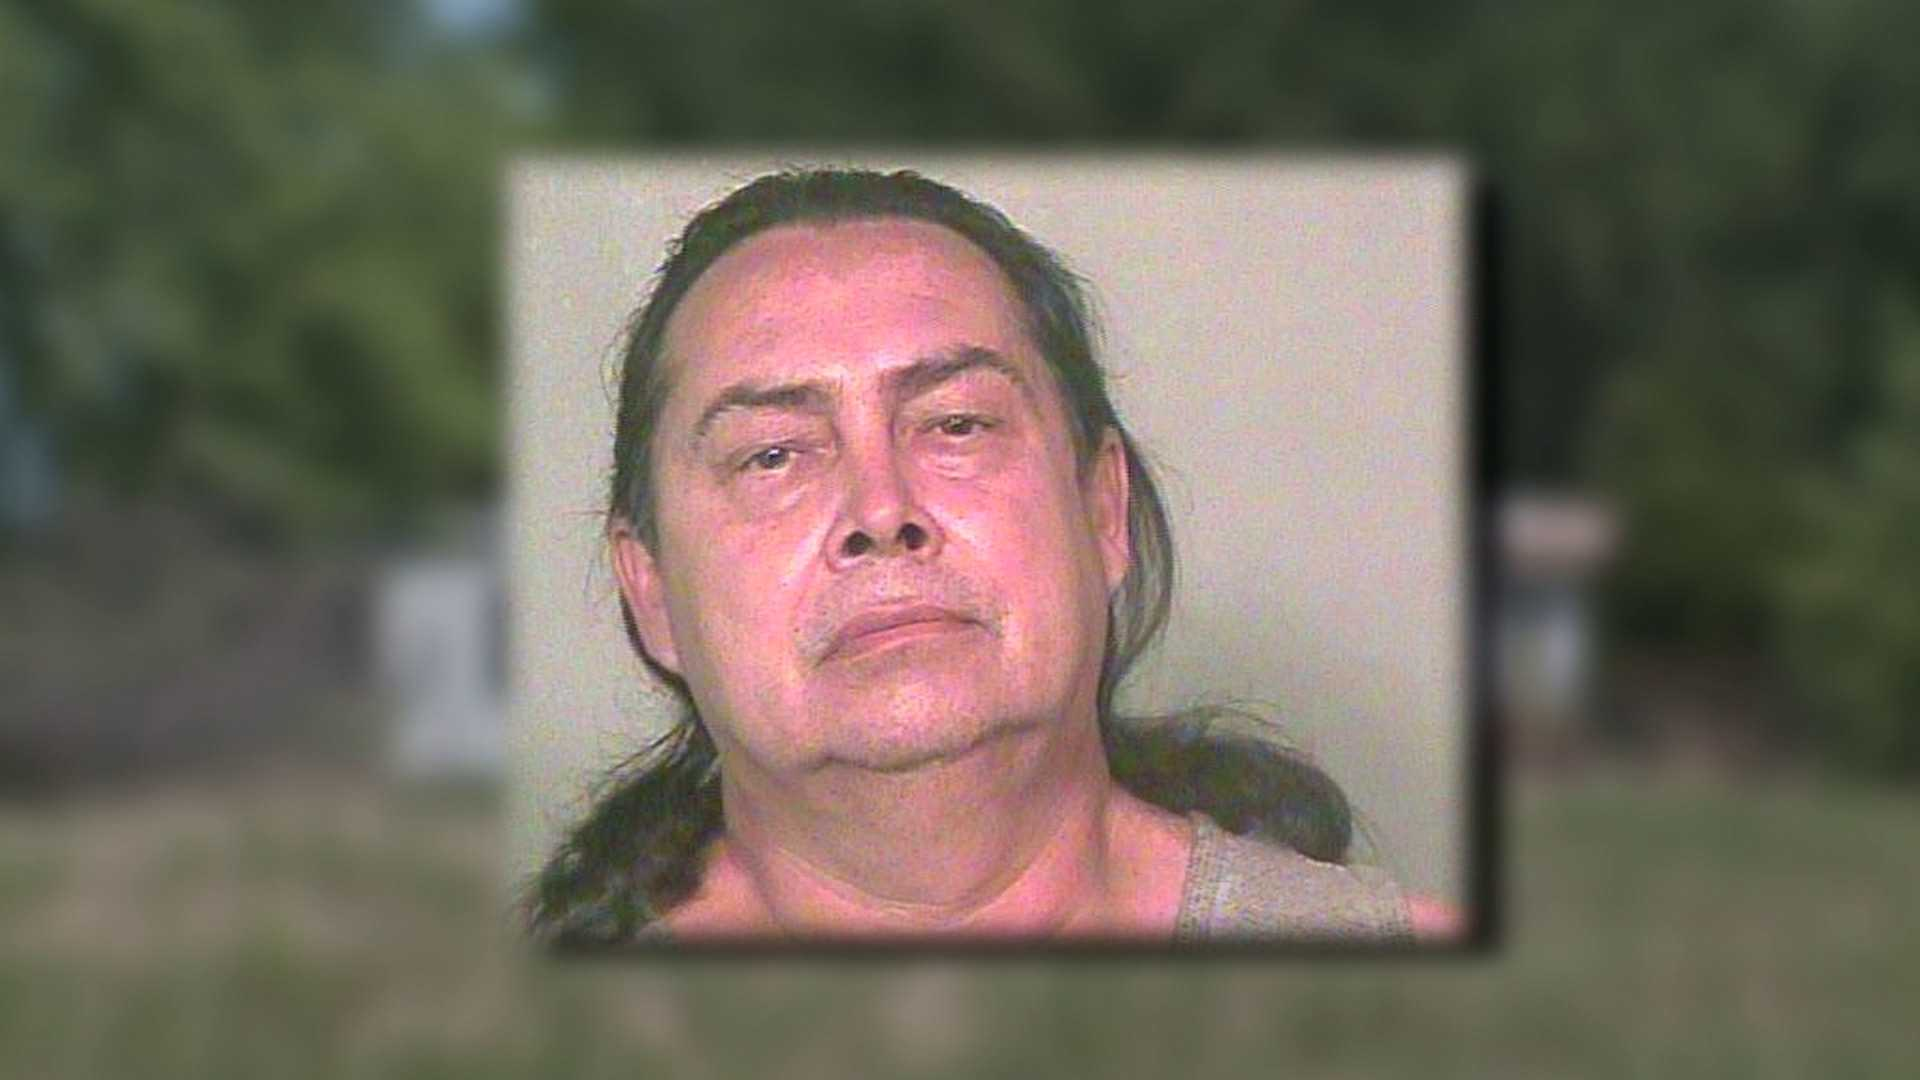 Man arrested for animal neglect